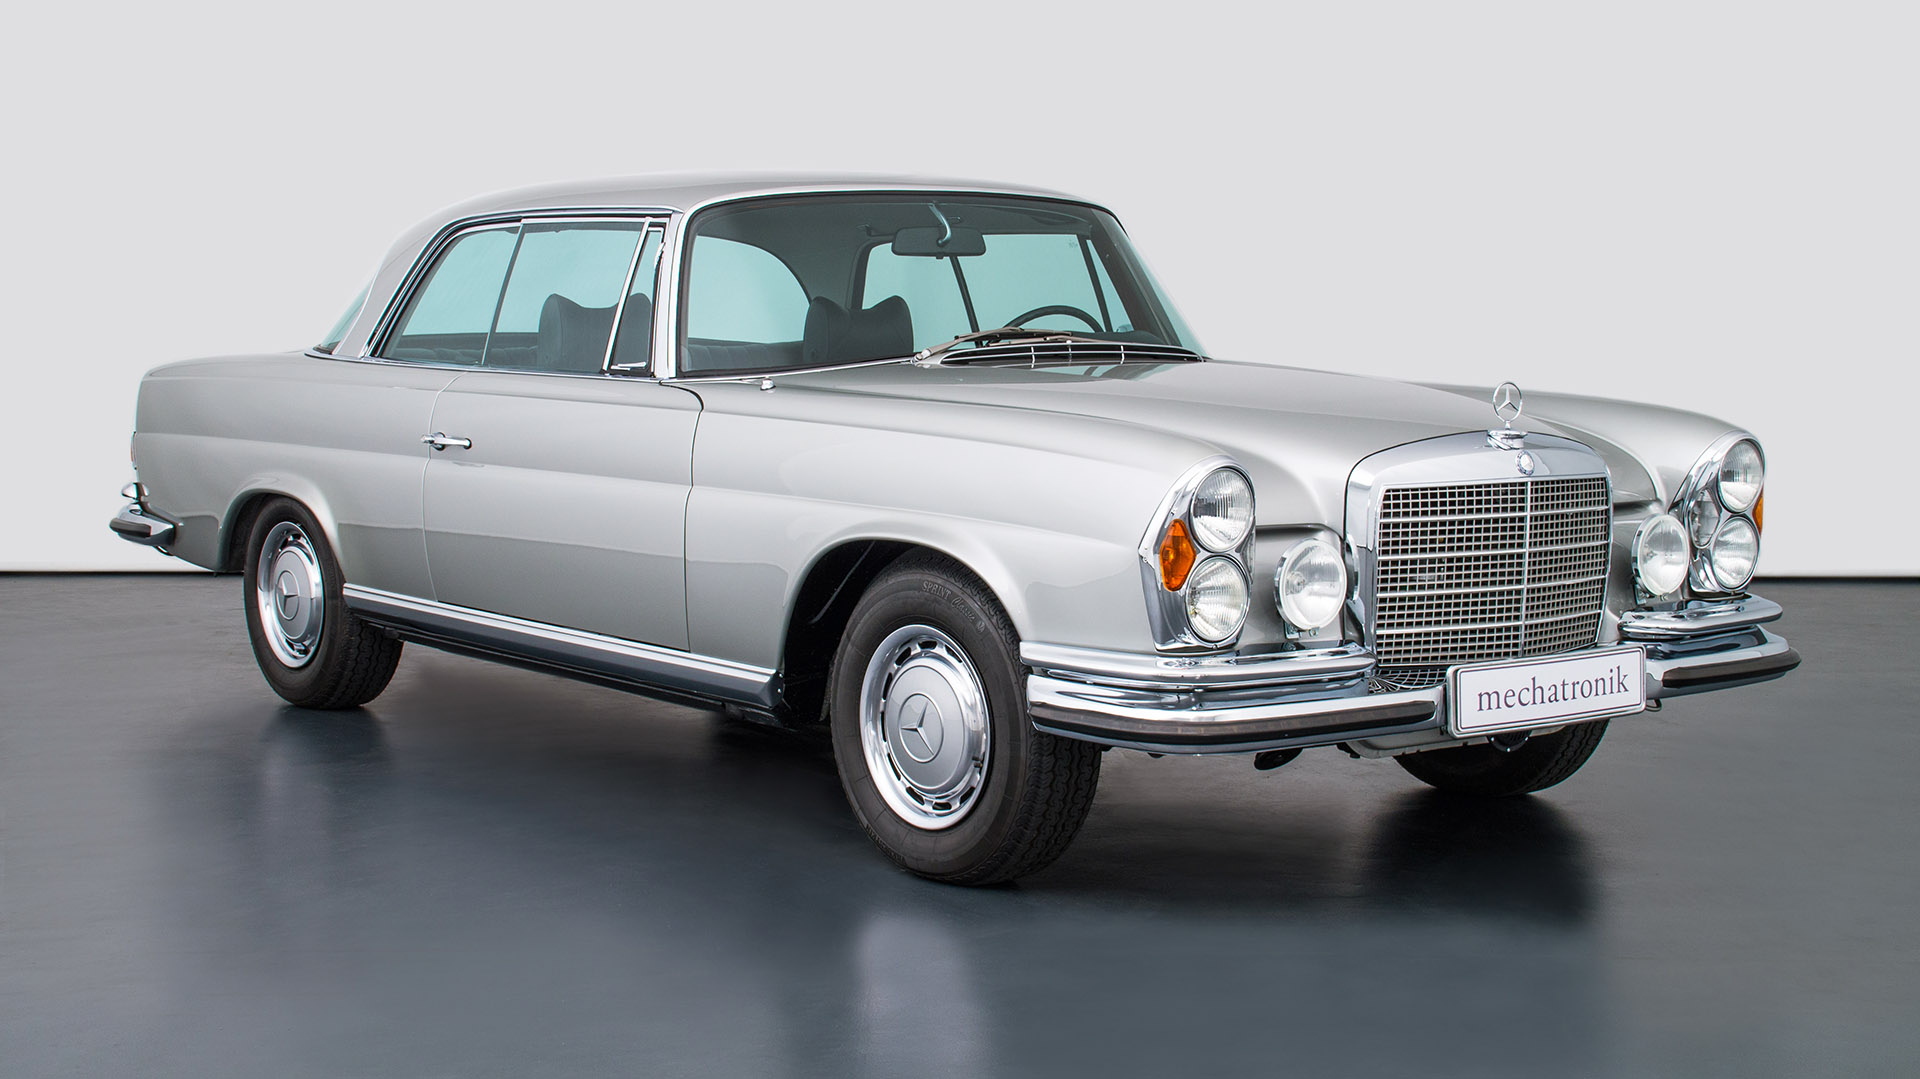 Mercedes-Benz W 111 280 SE 3.5 Coupé